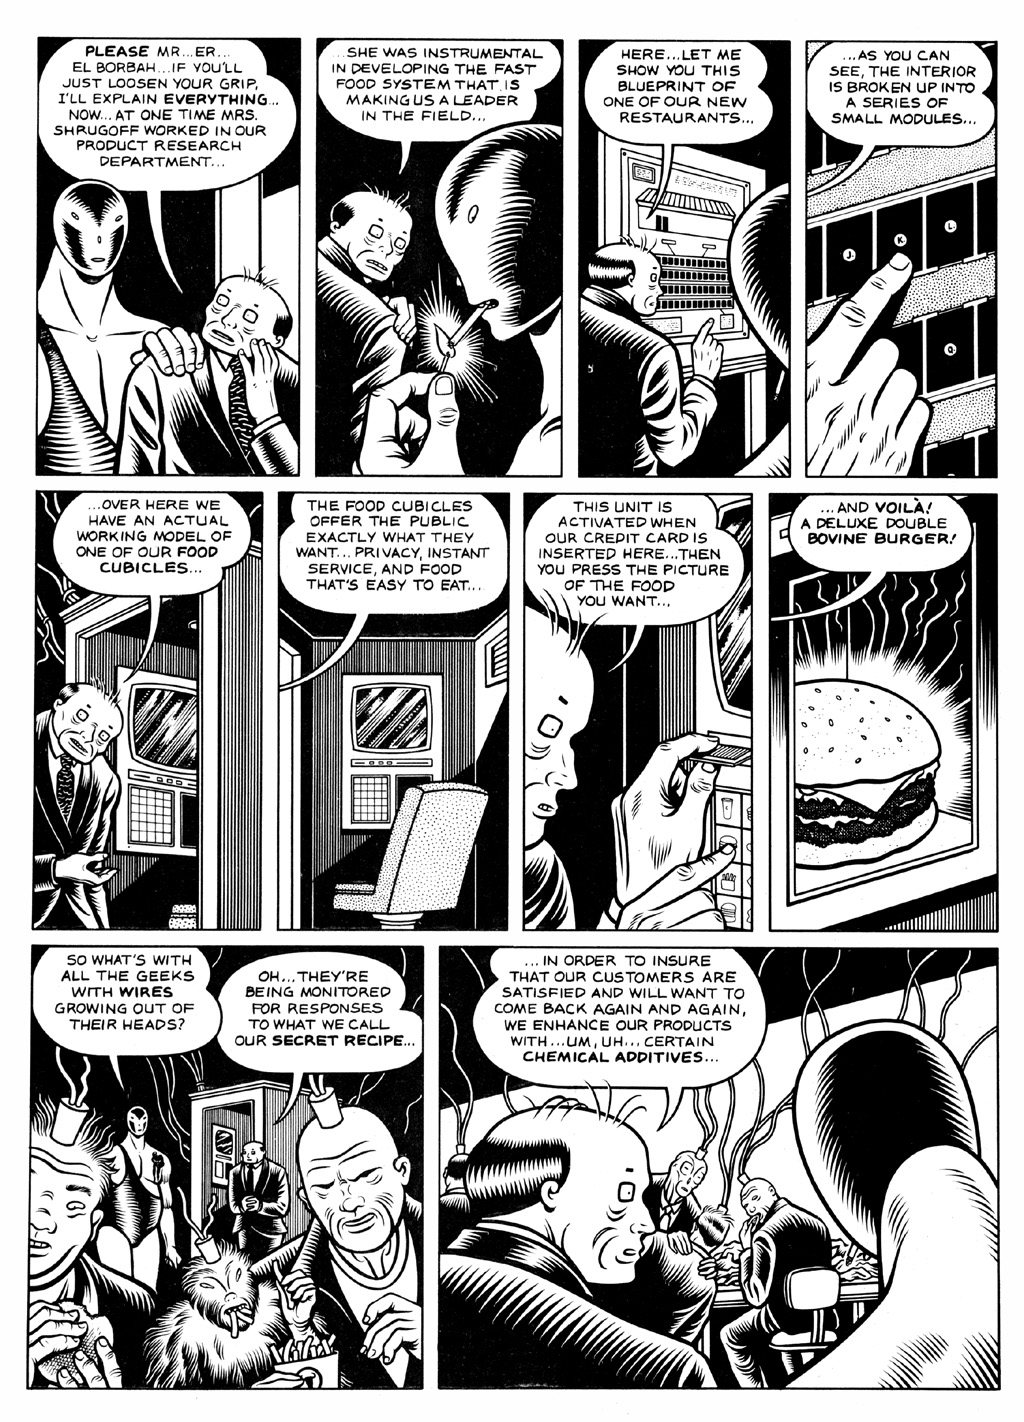 The porpor books blog sf and fantasy books 1968 1988 august 2013 among the better entries was another el borbah tale by charles burns that ive posted below malvernweather Images